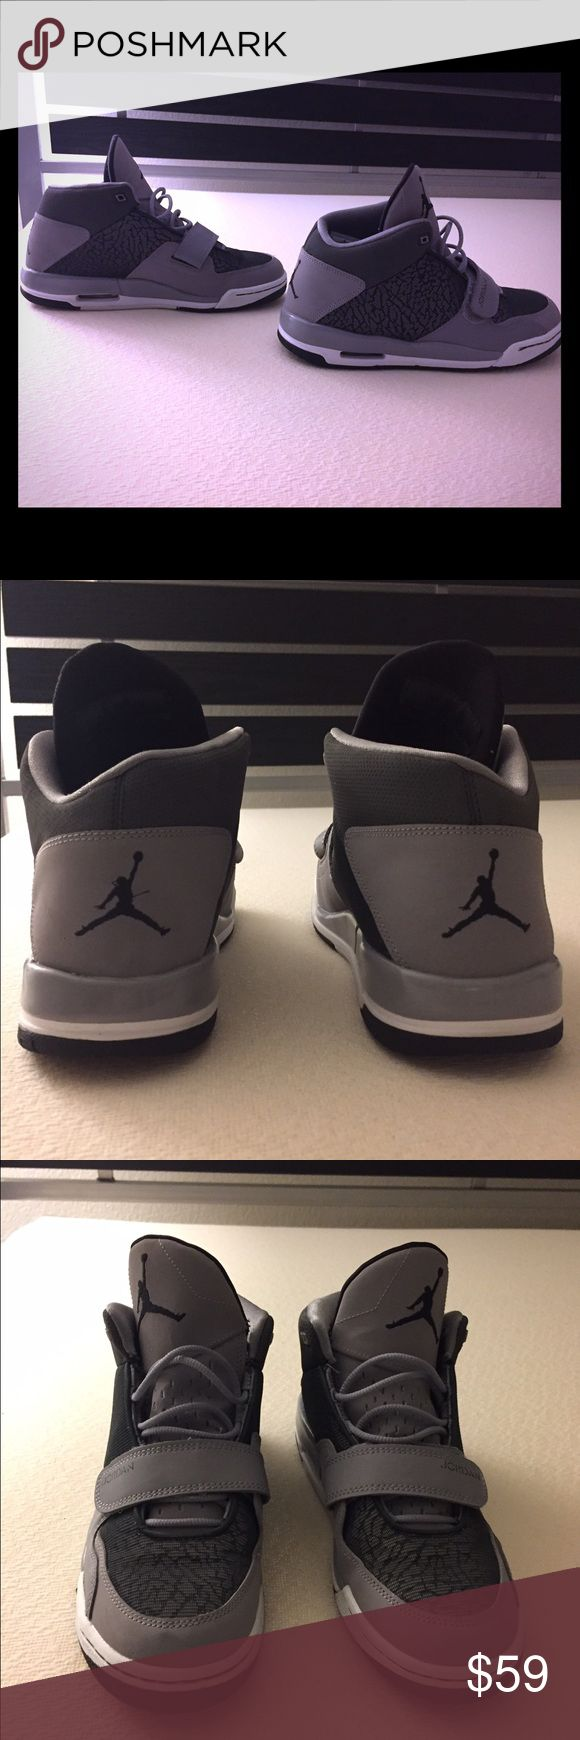 Reduced! Nike Air Jordan Flight Club Sneakers Barely worn kept clean as J's should be. Boys size 6.5 (women's 6.5) authentic Air Jordan's Jordan Shoes Sneakers